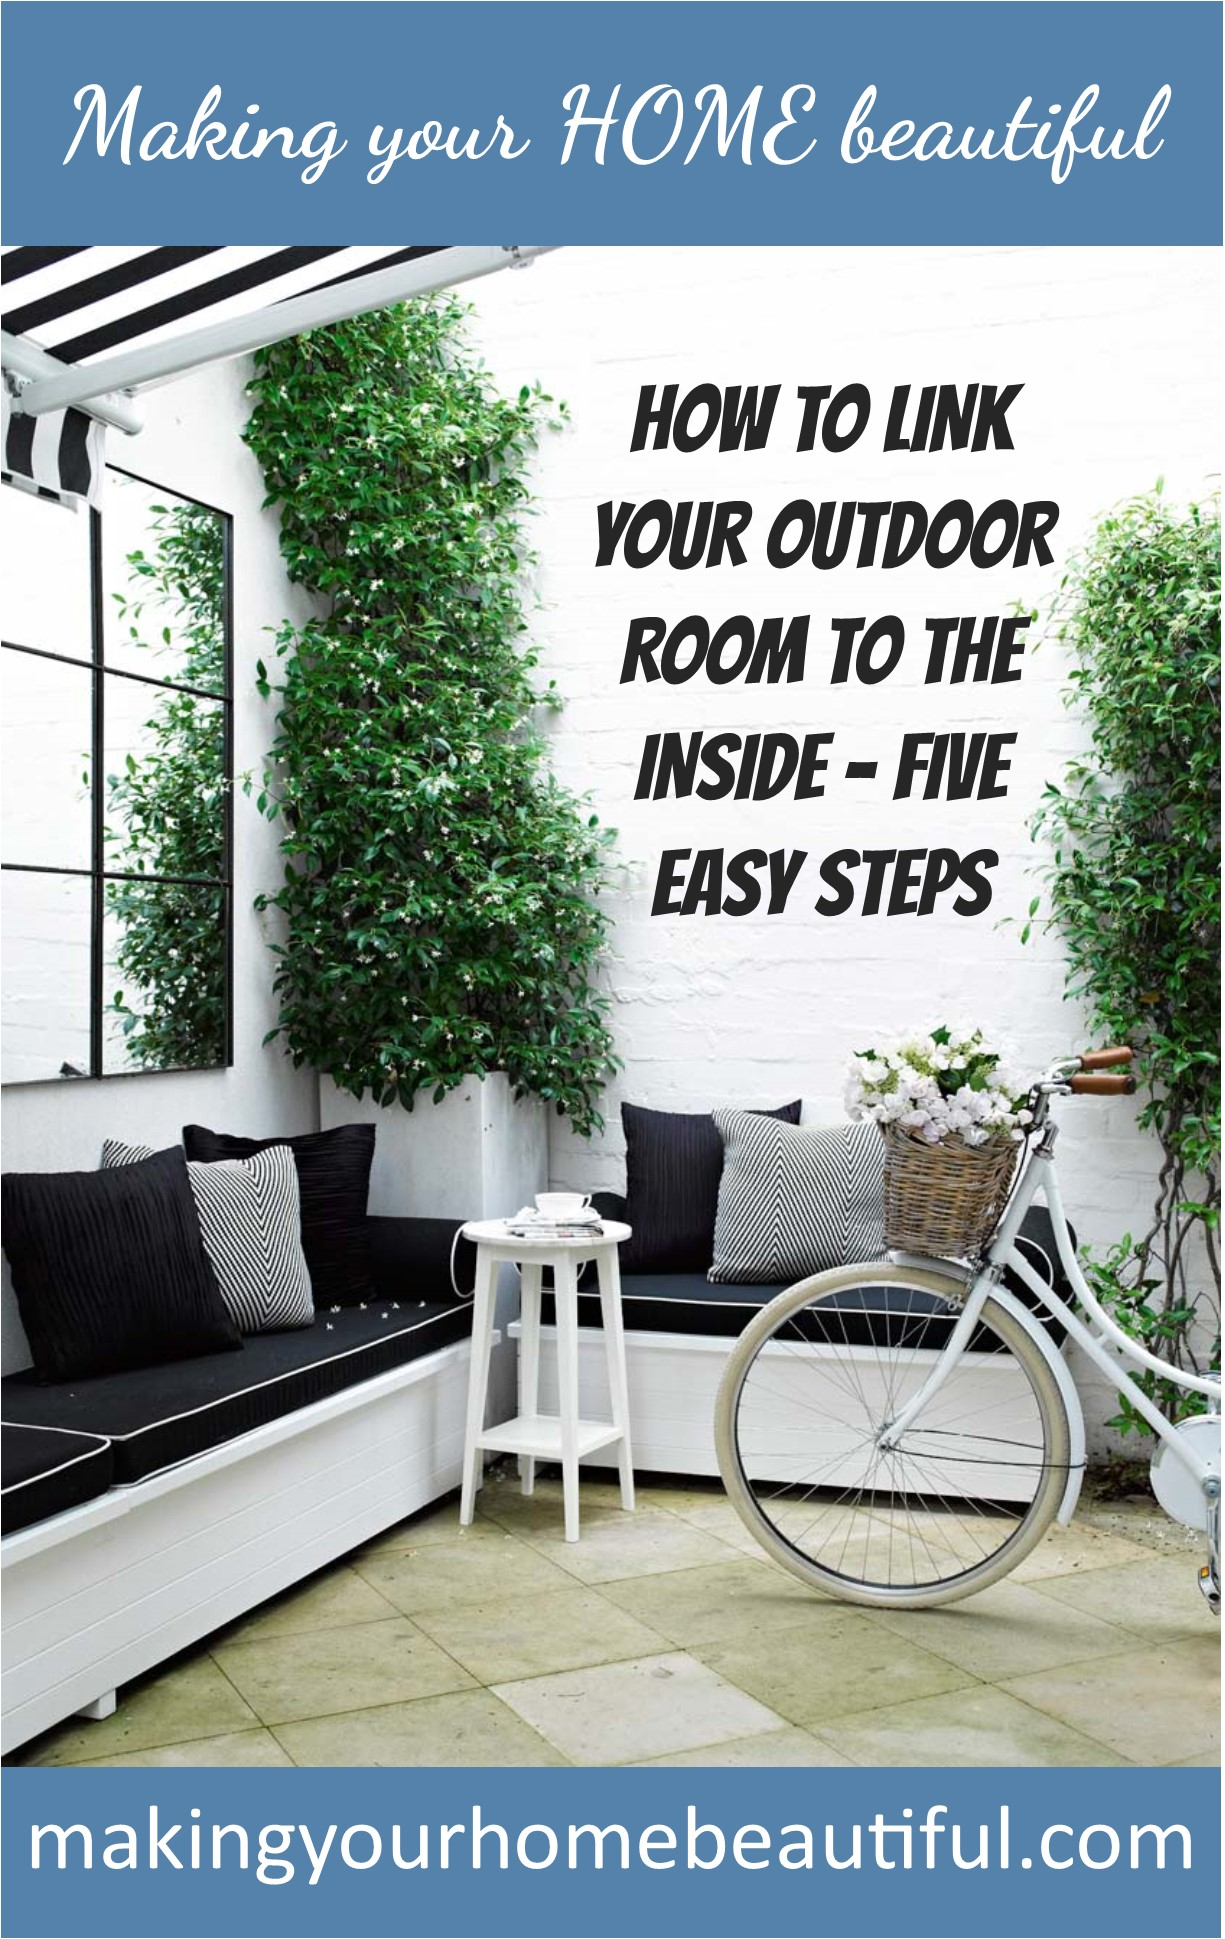 How to link your outdoor room to the inside in 5 easy steps